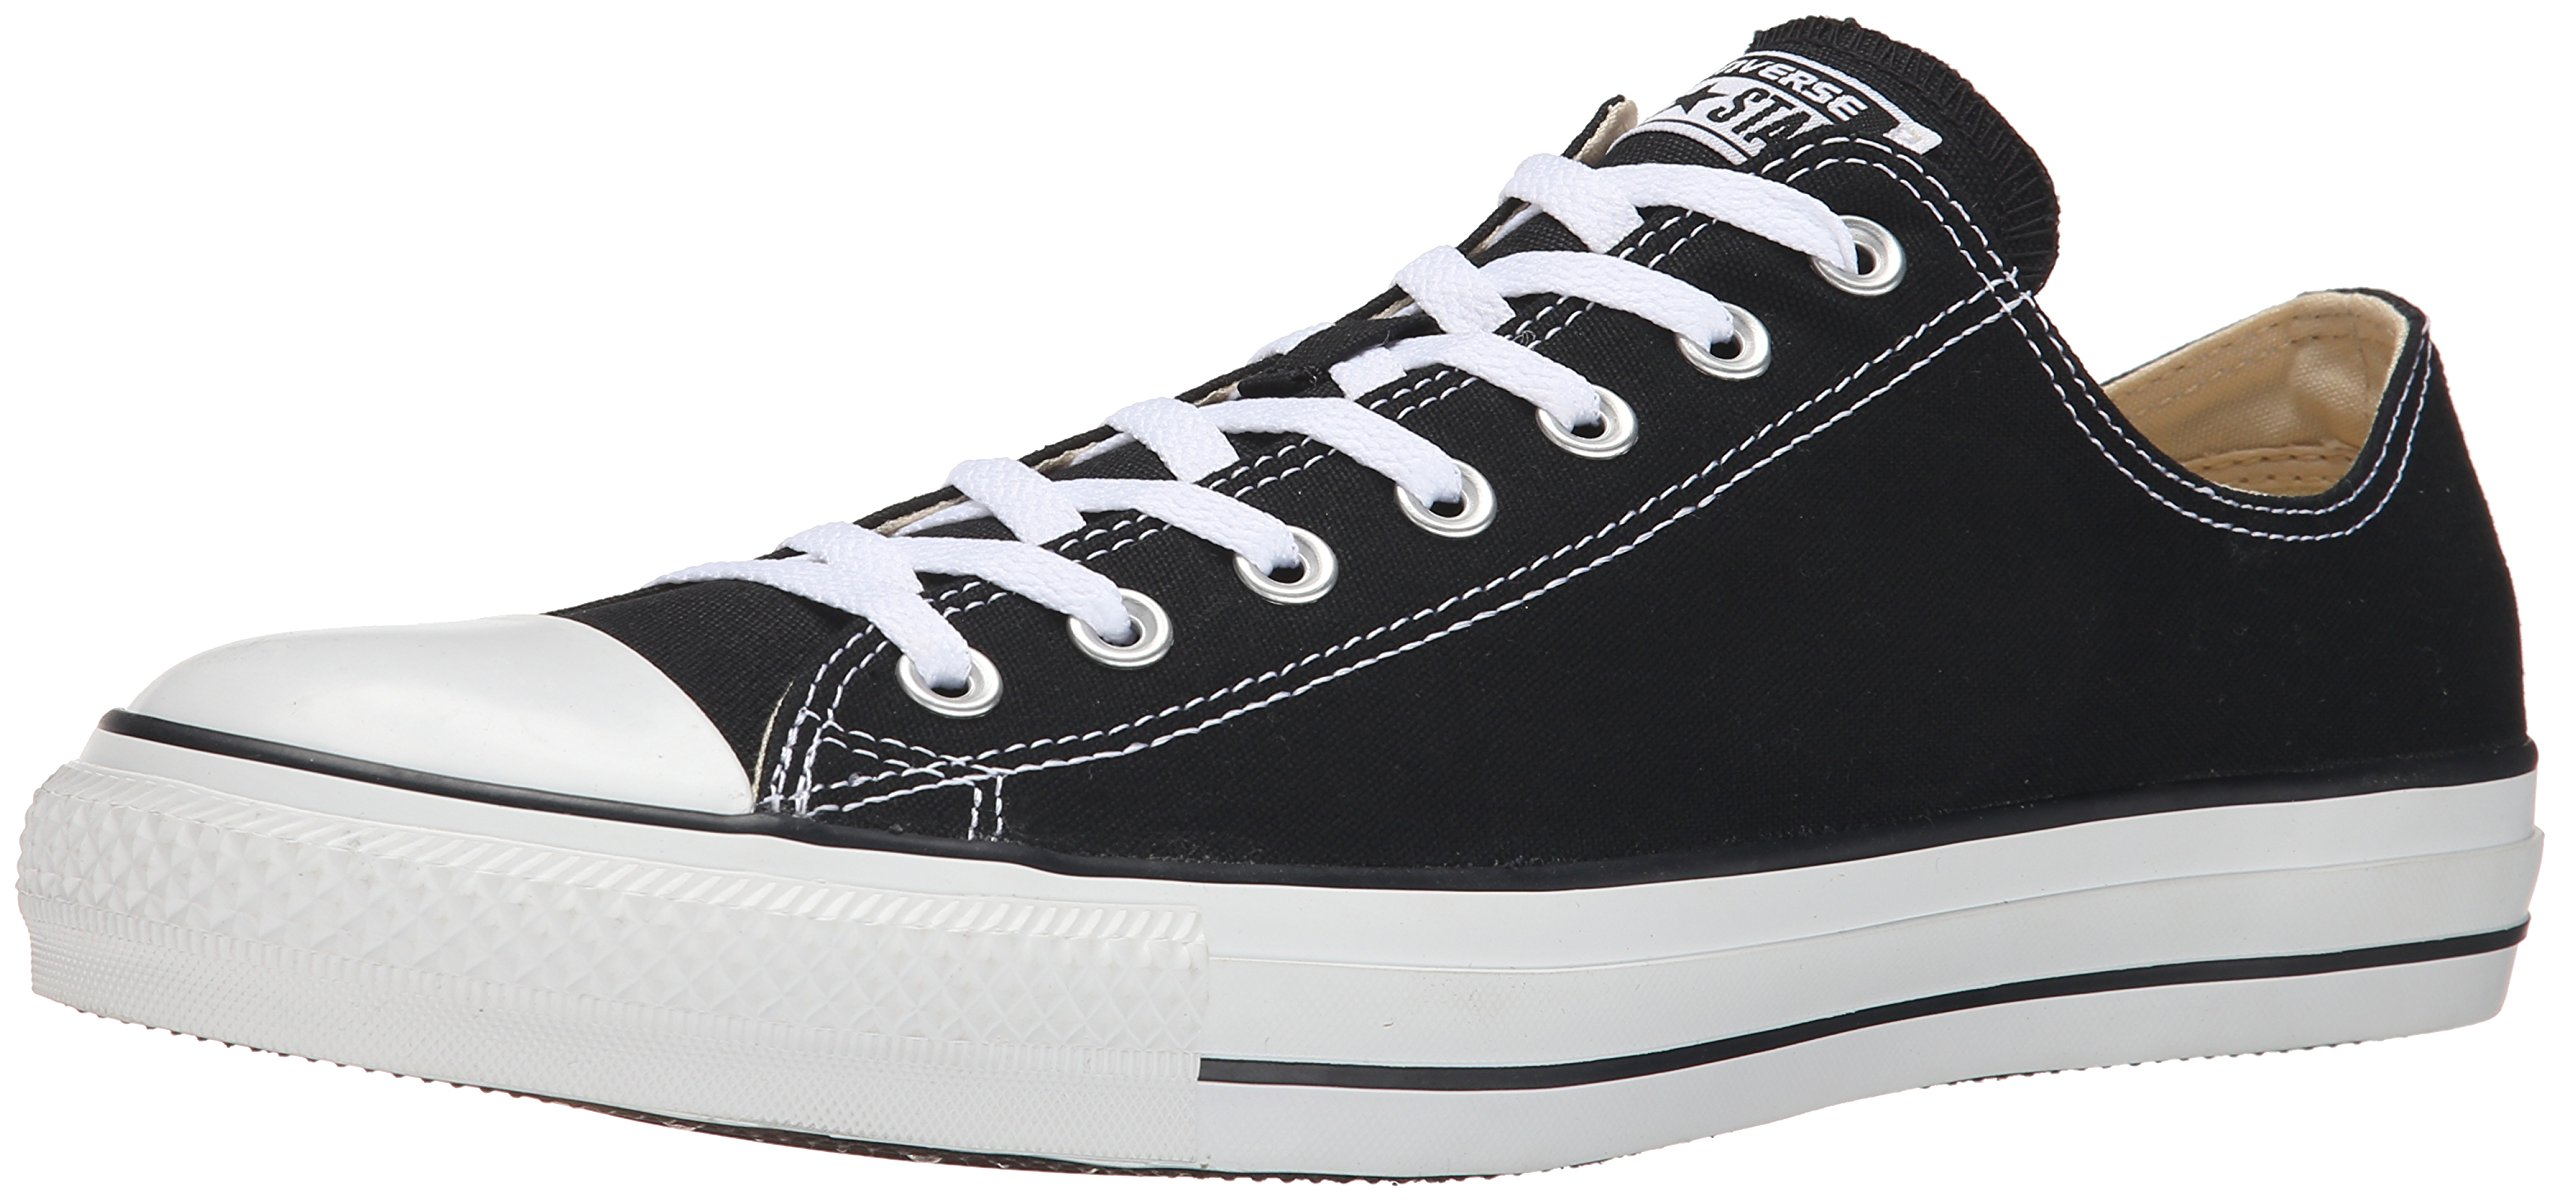 dd77dcbac3ffa1 Galleon - Converse Unisex Chuck Taylor All Star HI Basketball Shoe (5.5 B(M)  US Women   3.5 D(M) US Me